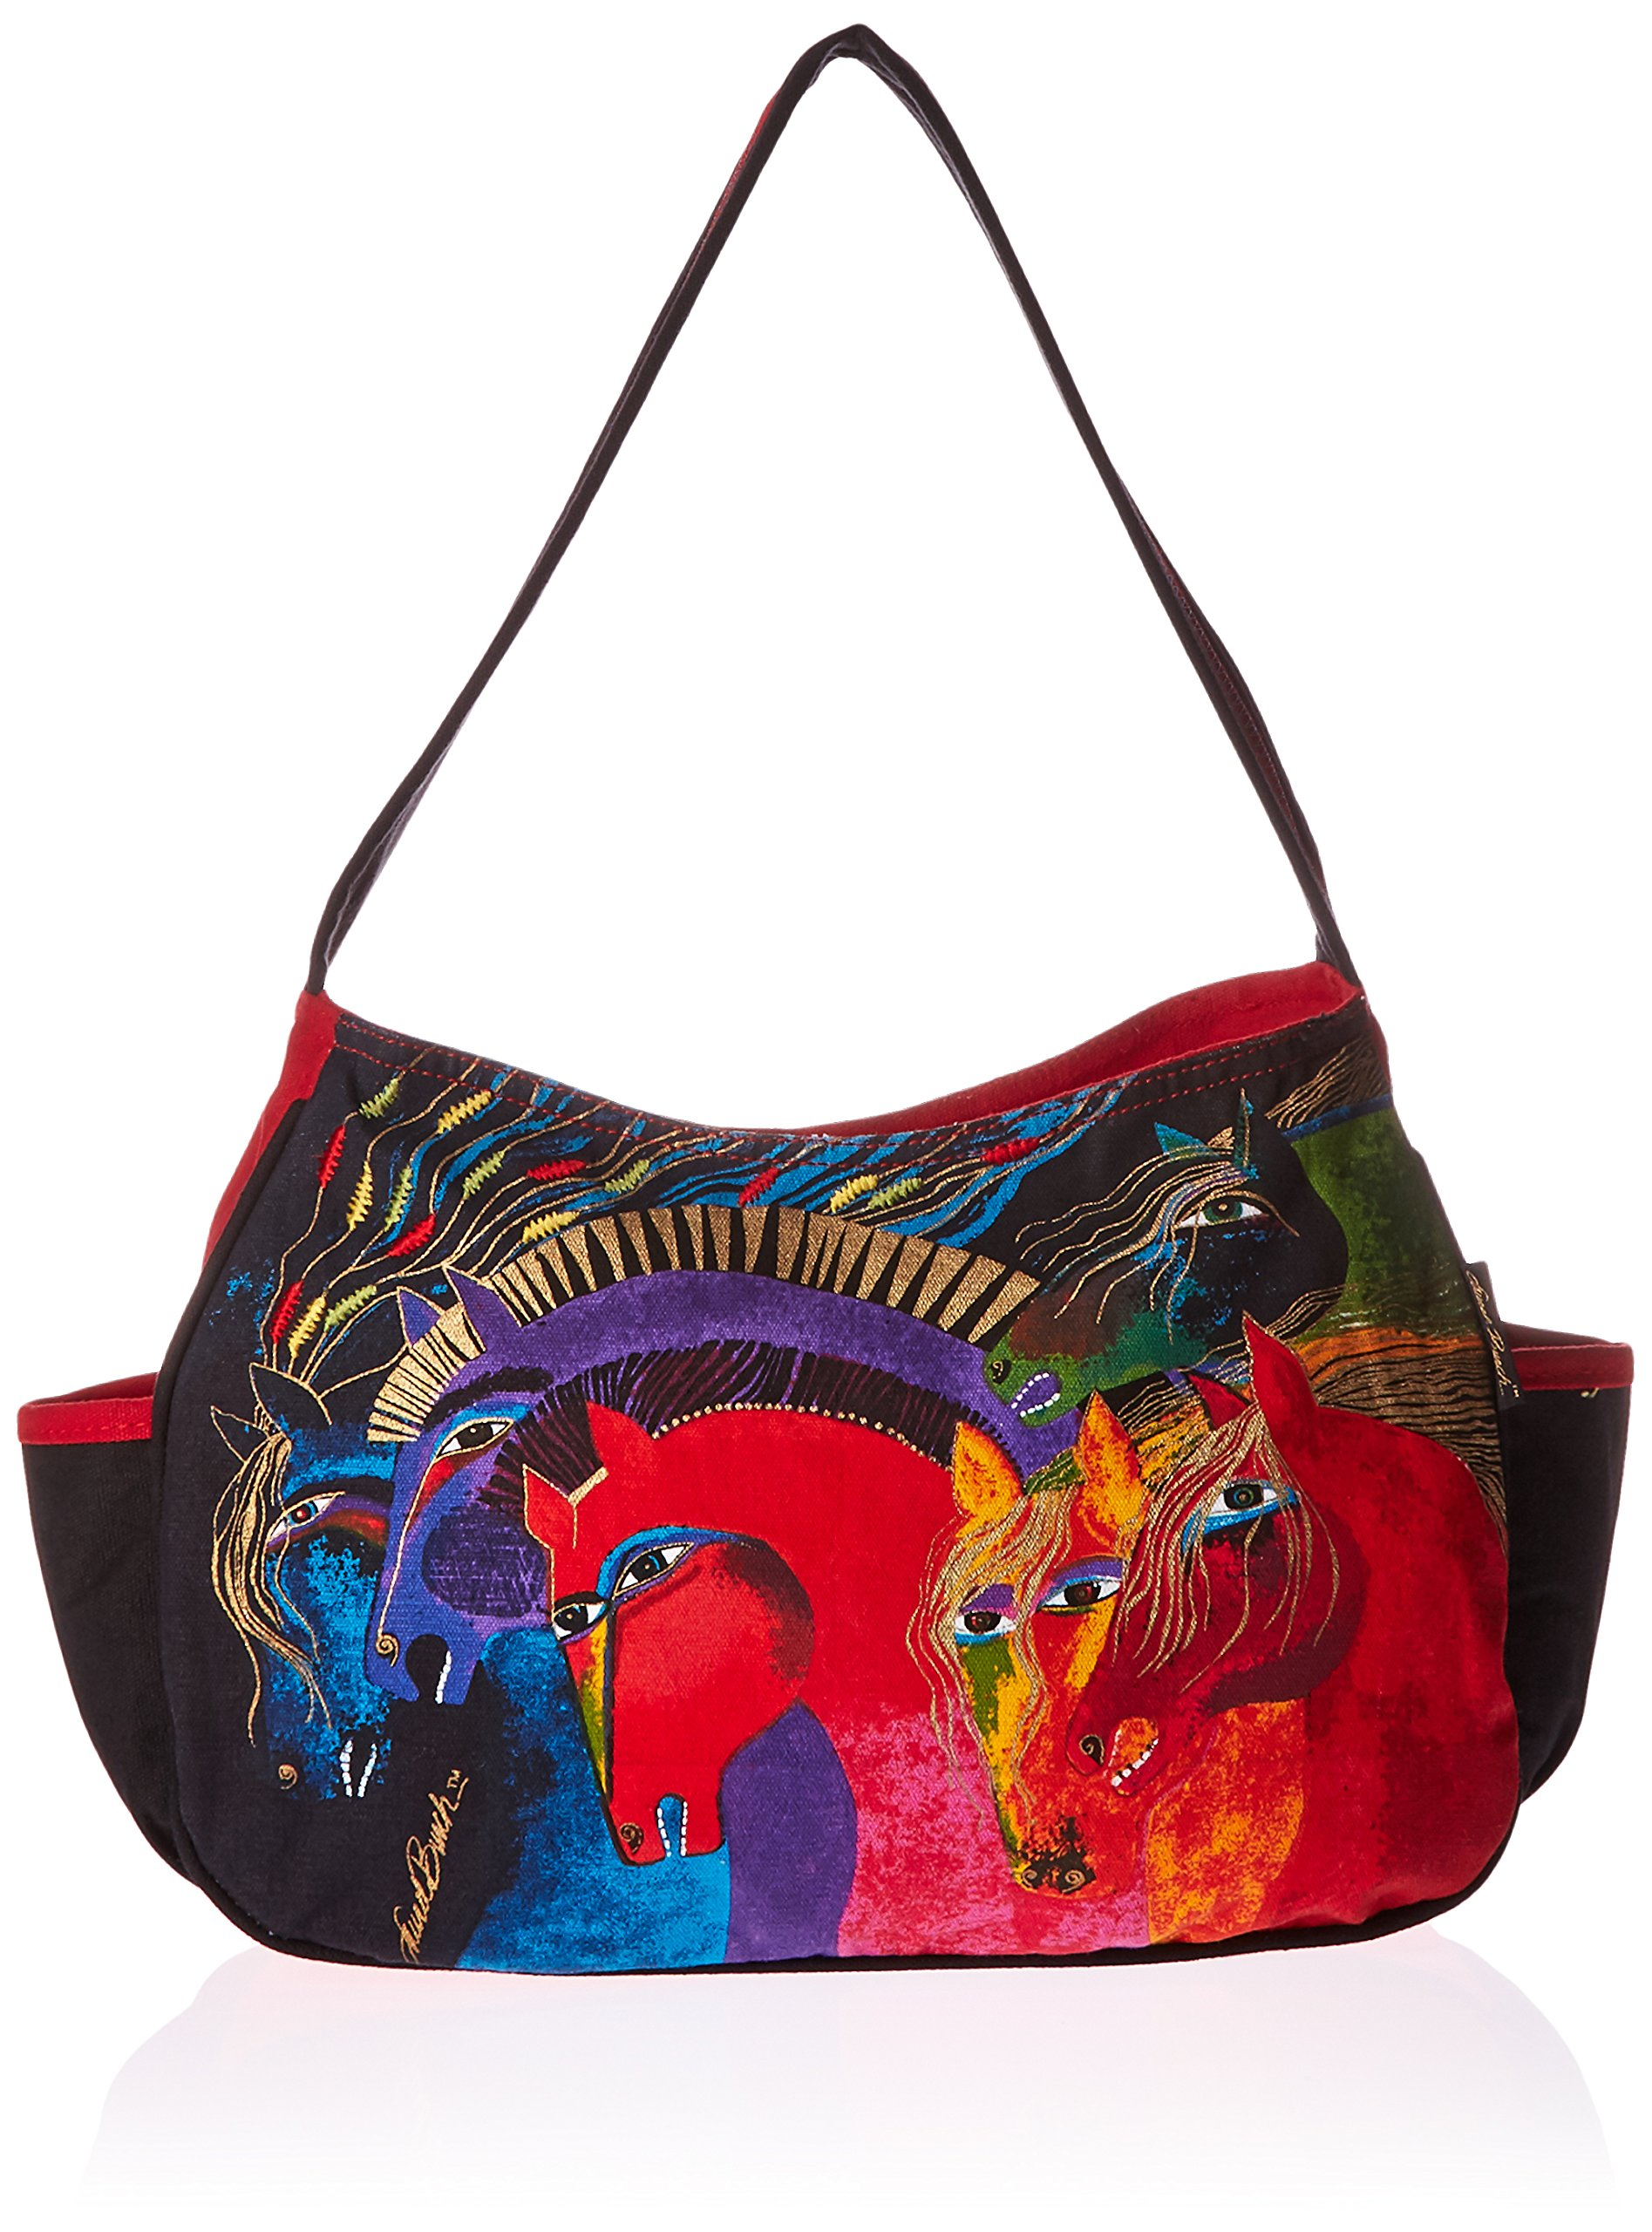 Laurel Burch Medium Hobo Zipper Top, 15-Inch by 4-1/2-Inch by 9-Inch, Wild Horses of Fire